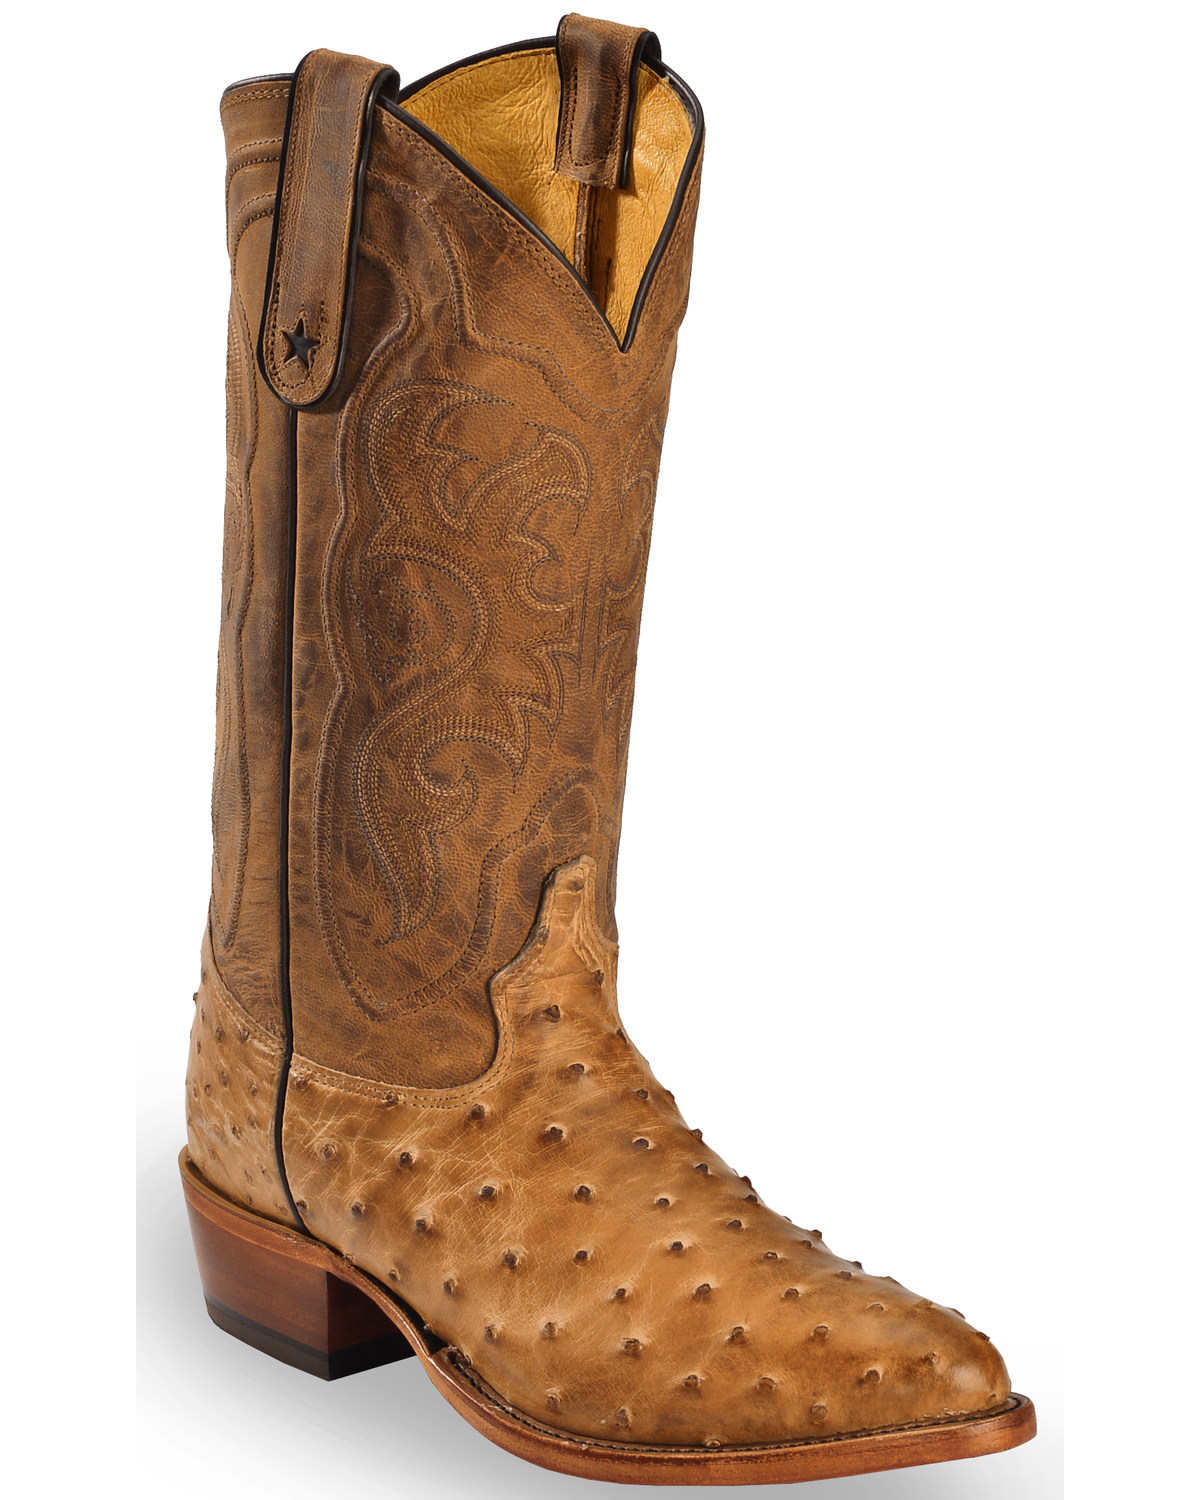 ea0359e62f9 Tony Lama Men s Durmont Tan Full Quill Ostrich Cowboy Boots - Medium ...